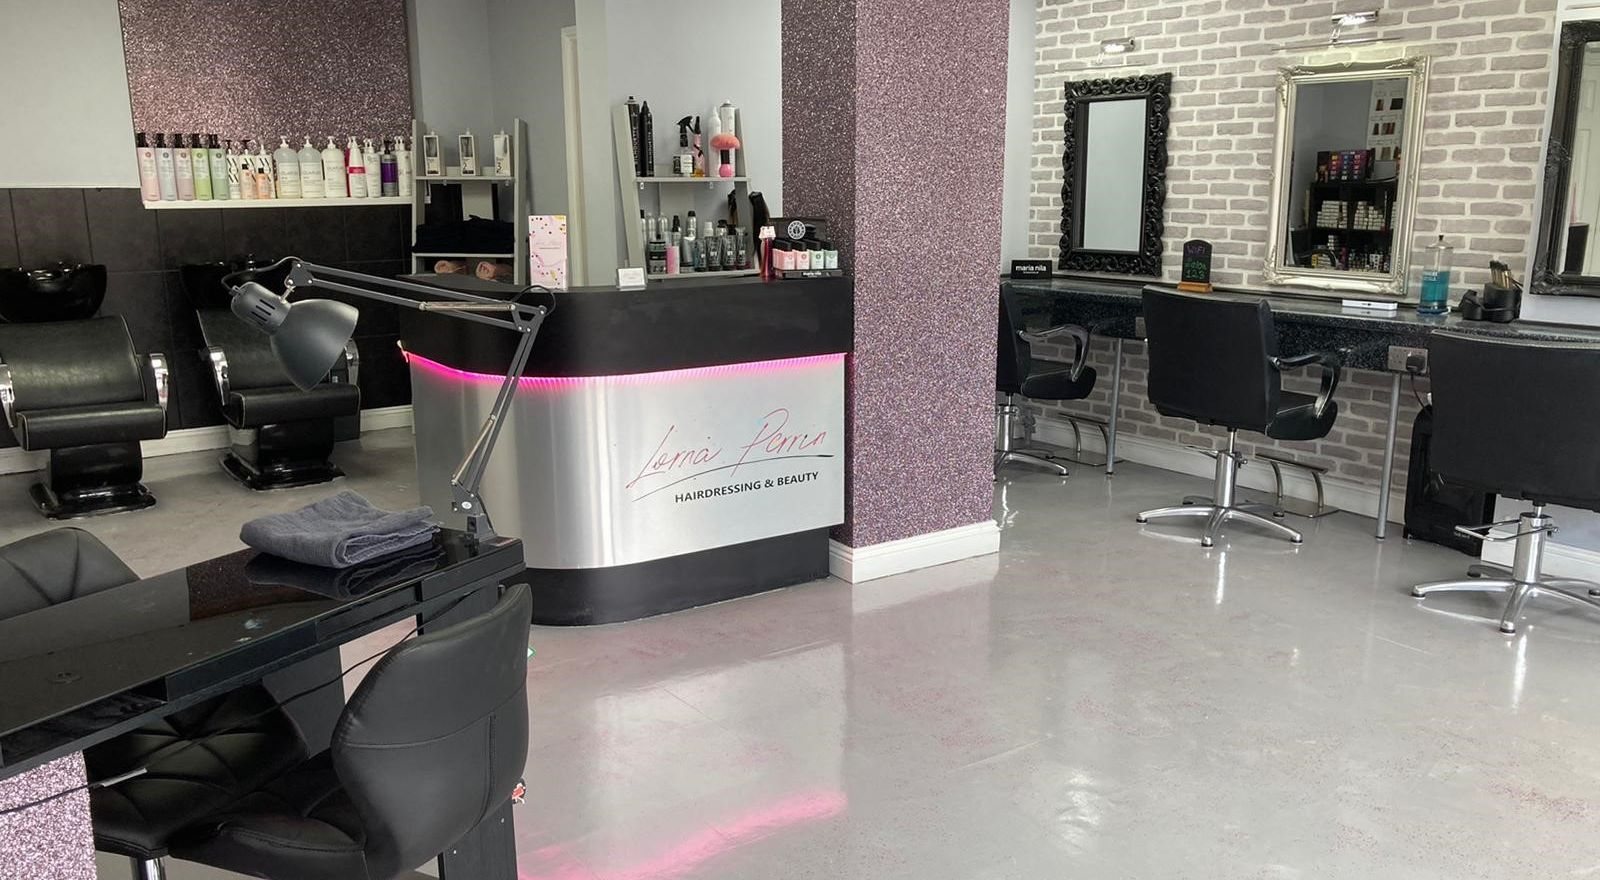 Lorna Perrin Hairdressing & Beauty